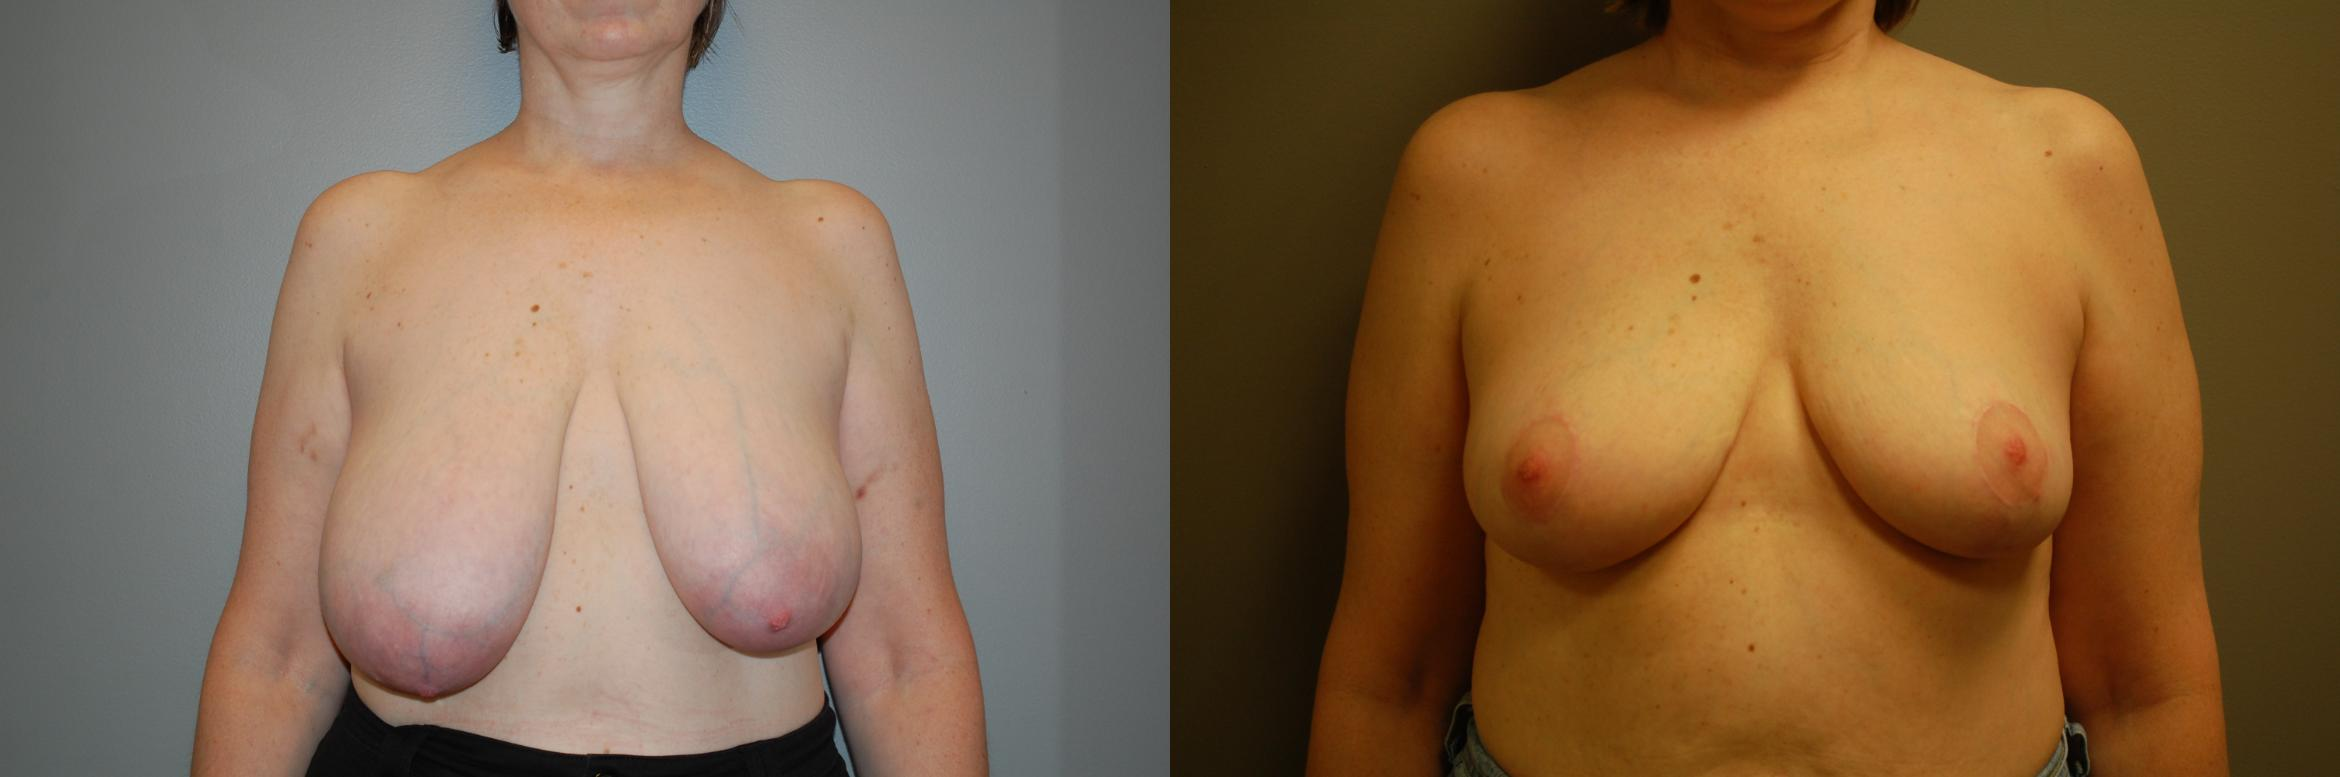 Breast Reduction Before & After Photo | Longmeadow, MA | Aesthetic Plastic & Reconstructive Surgery